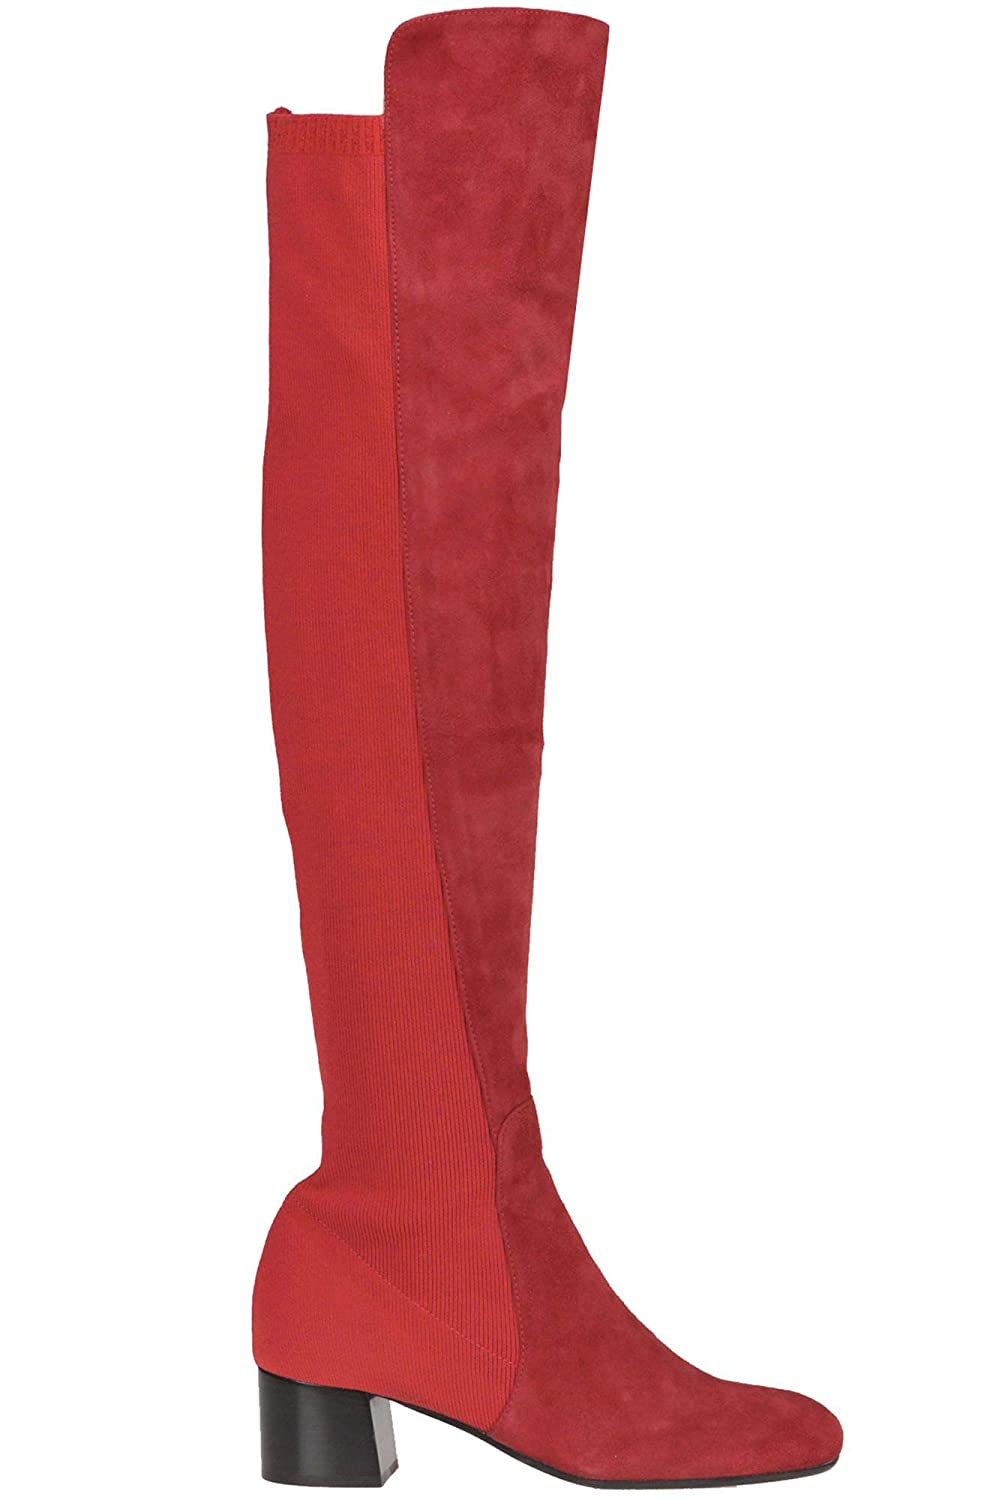 - MALÌPARMI Women's MCGLCAS000006045I Red Suede Boots